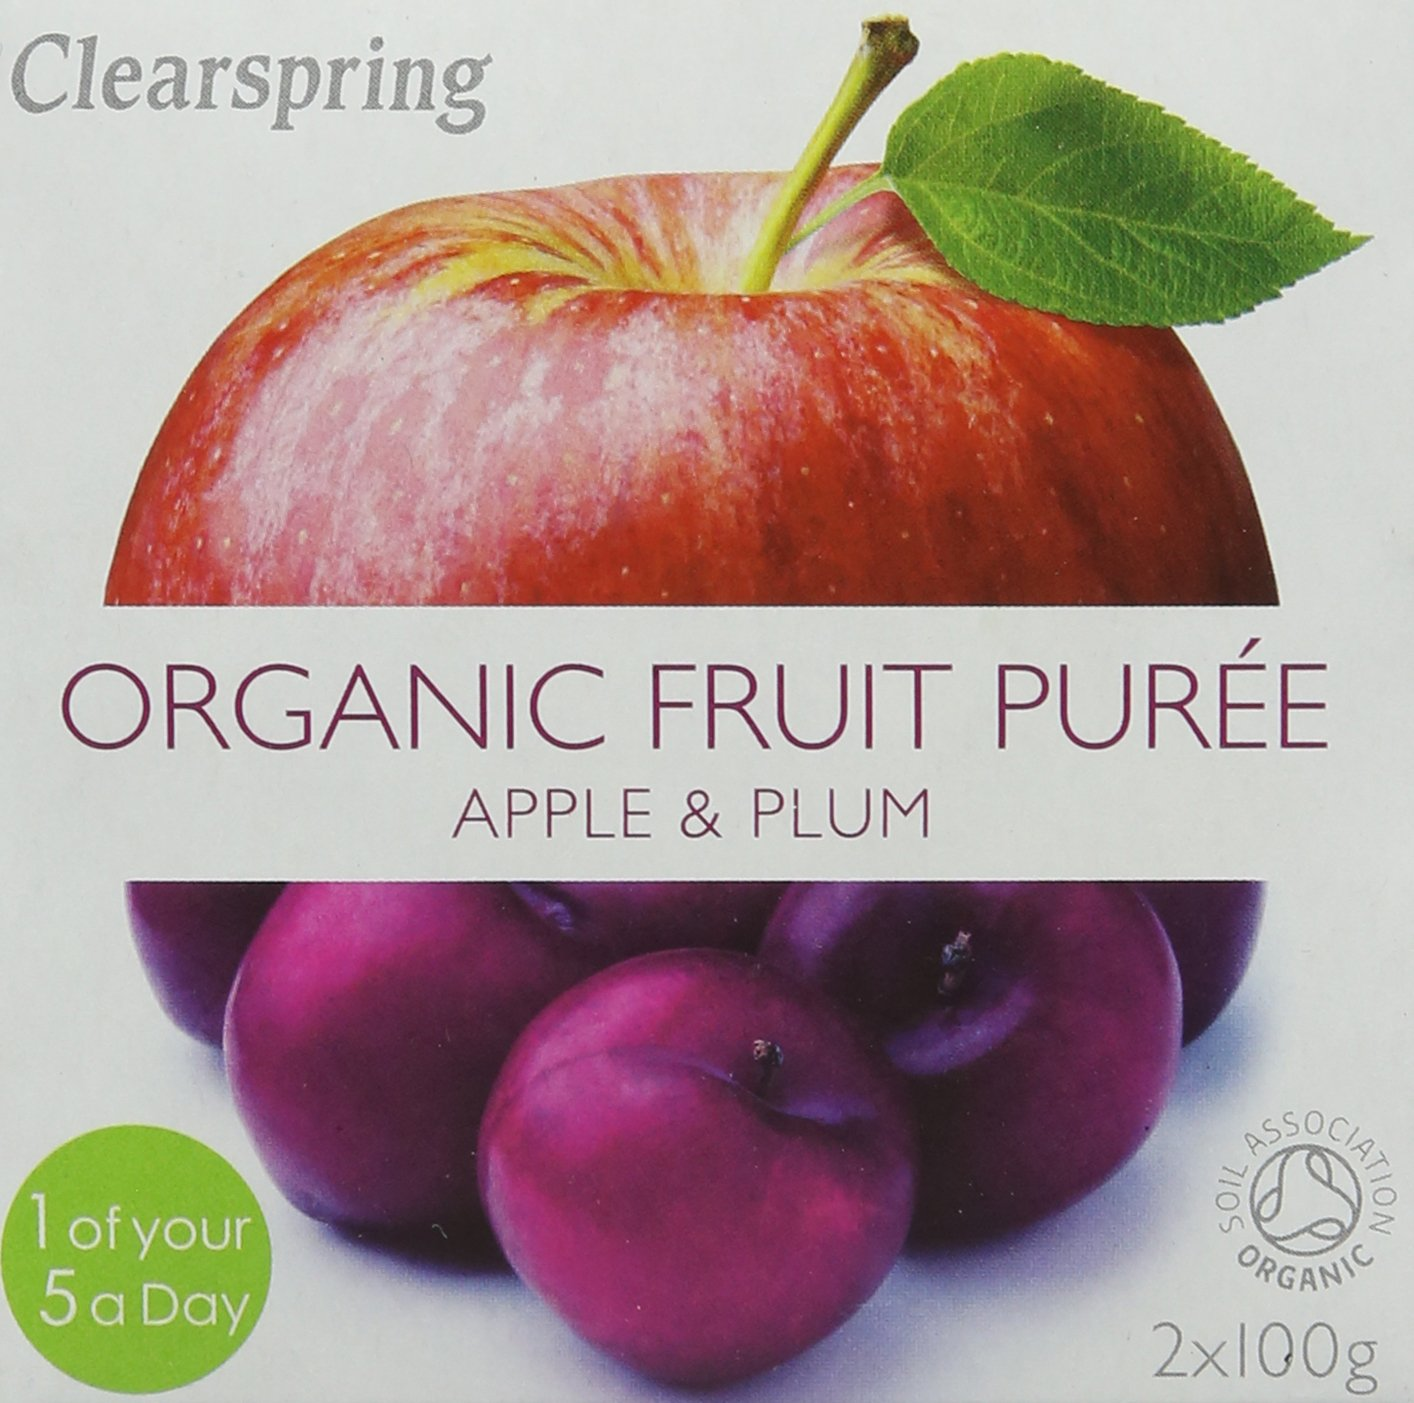 Clearspring Organic Apple and Plum Fruit Puree 2x100g (Pack of 12) Clearspring Ltd 82110